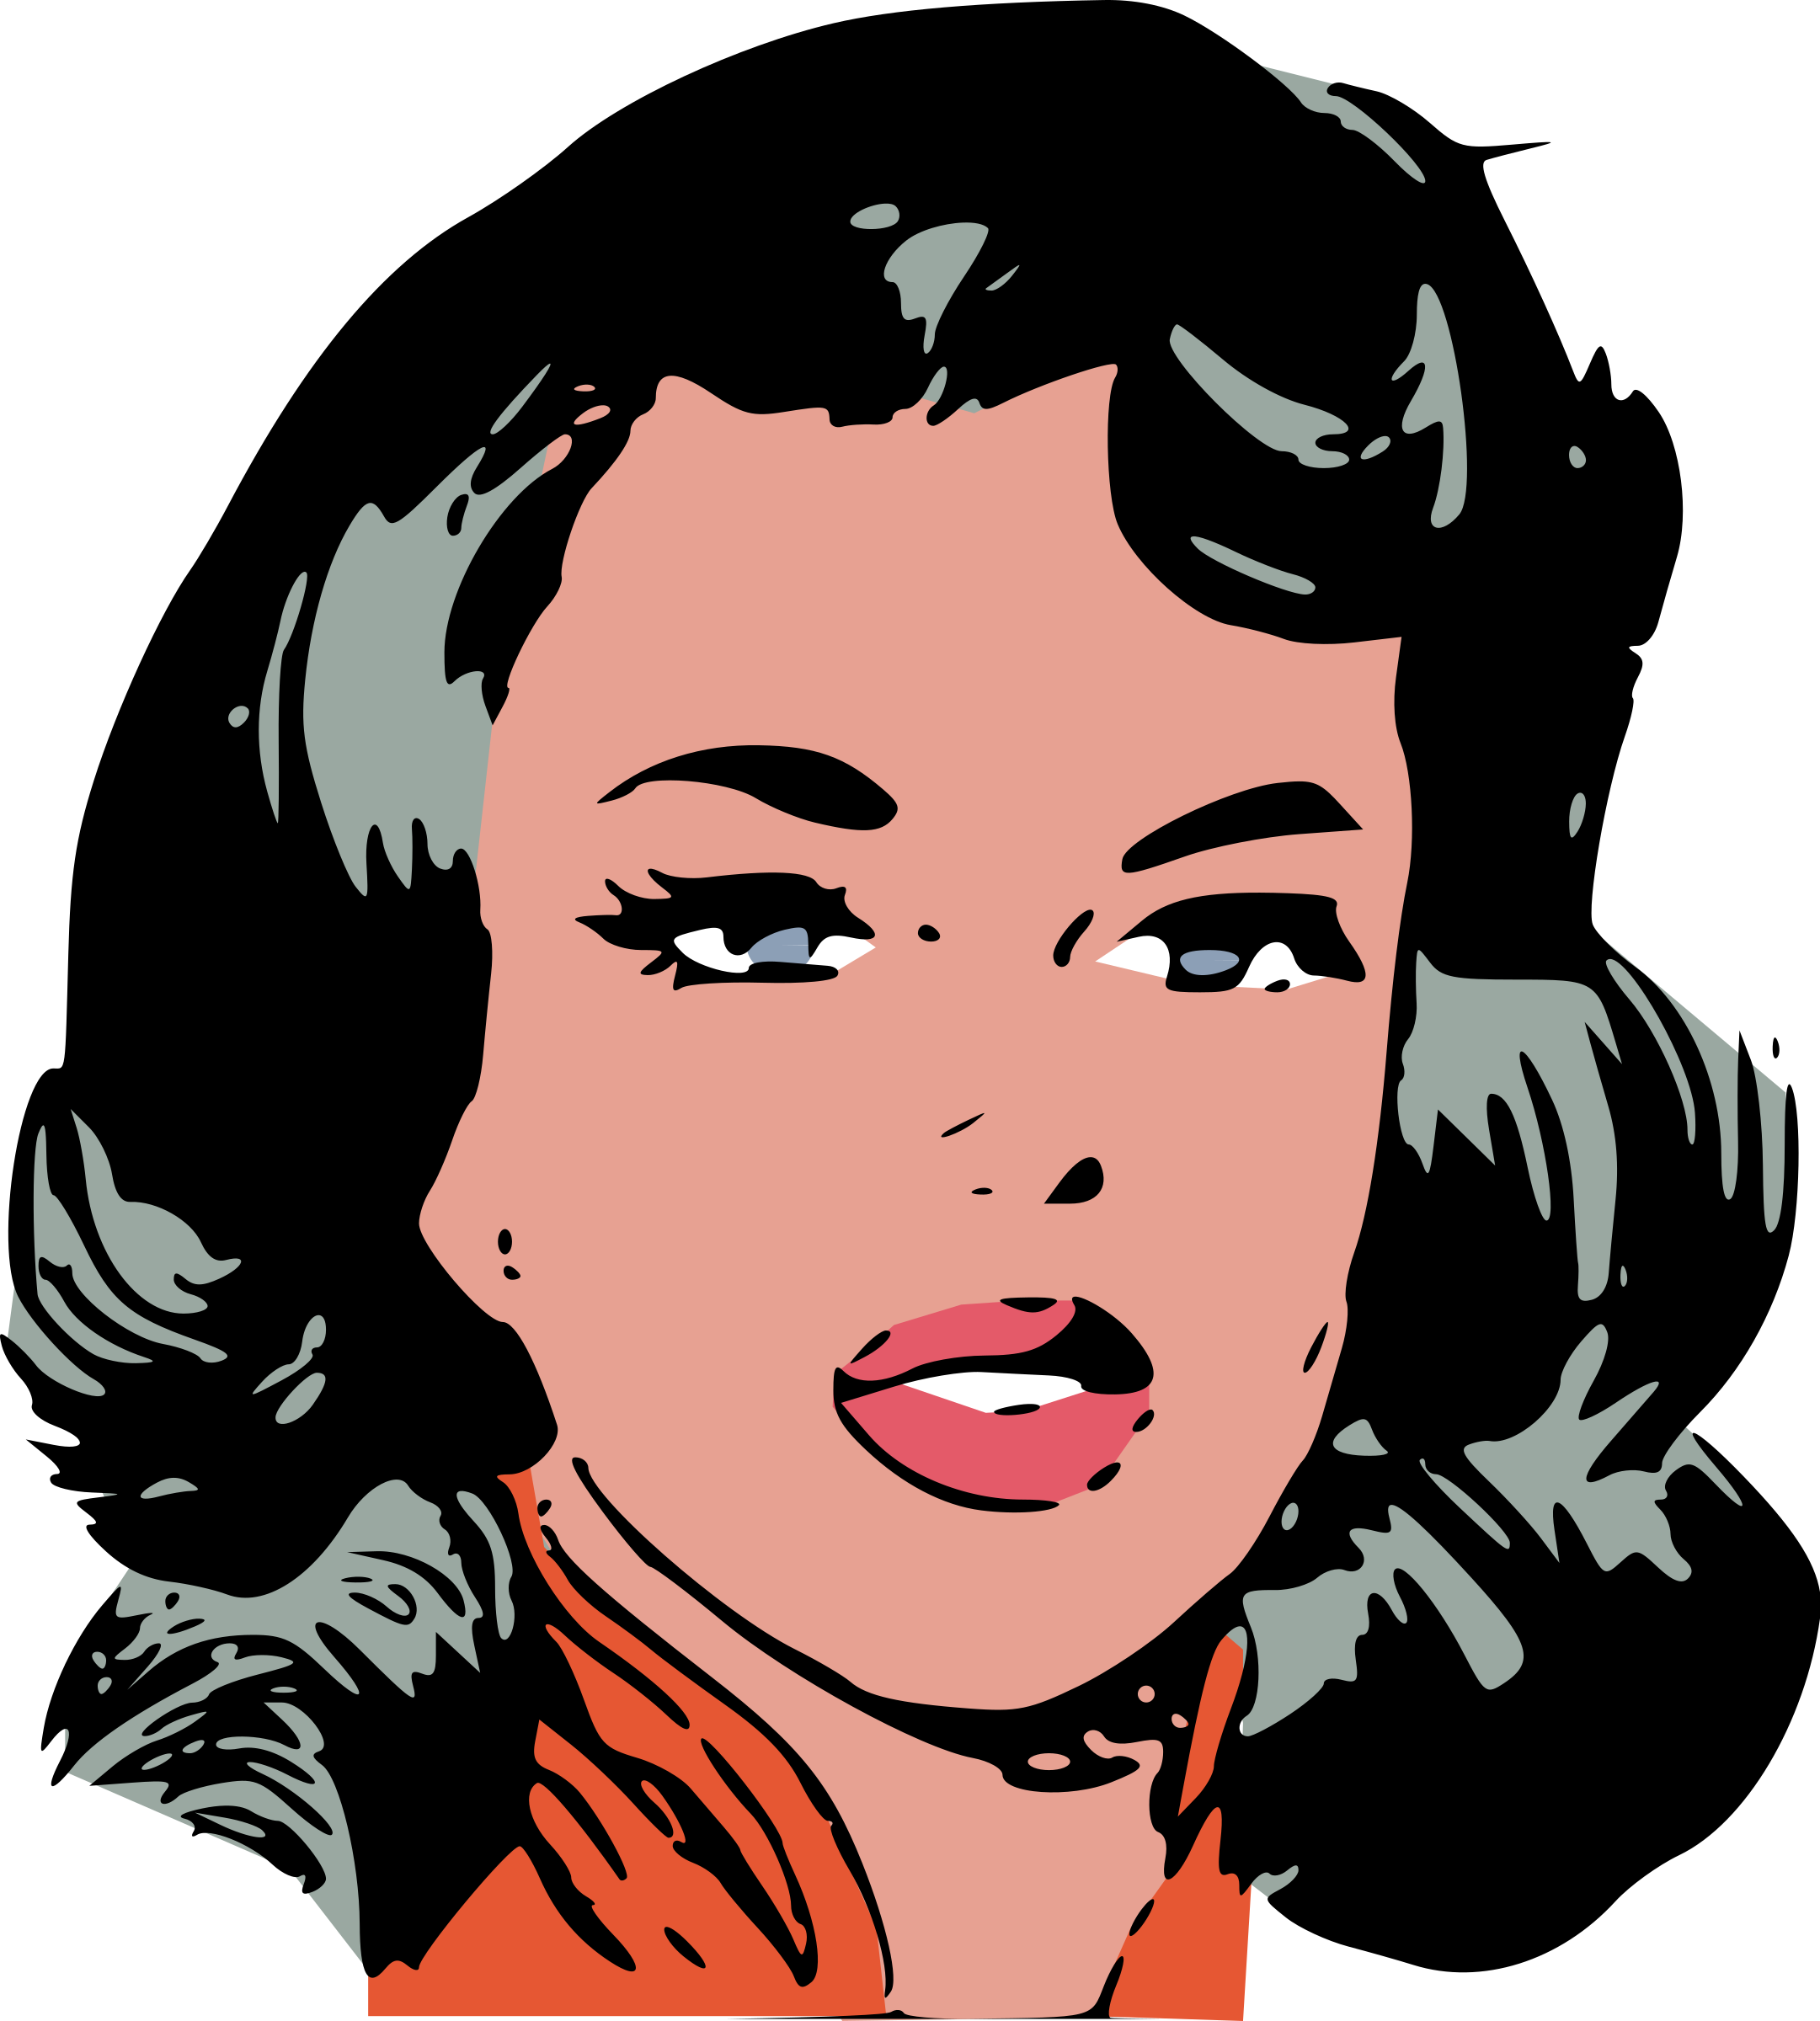 Eyebrow clipart angry woman face, Eyebrow angry woman face.